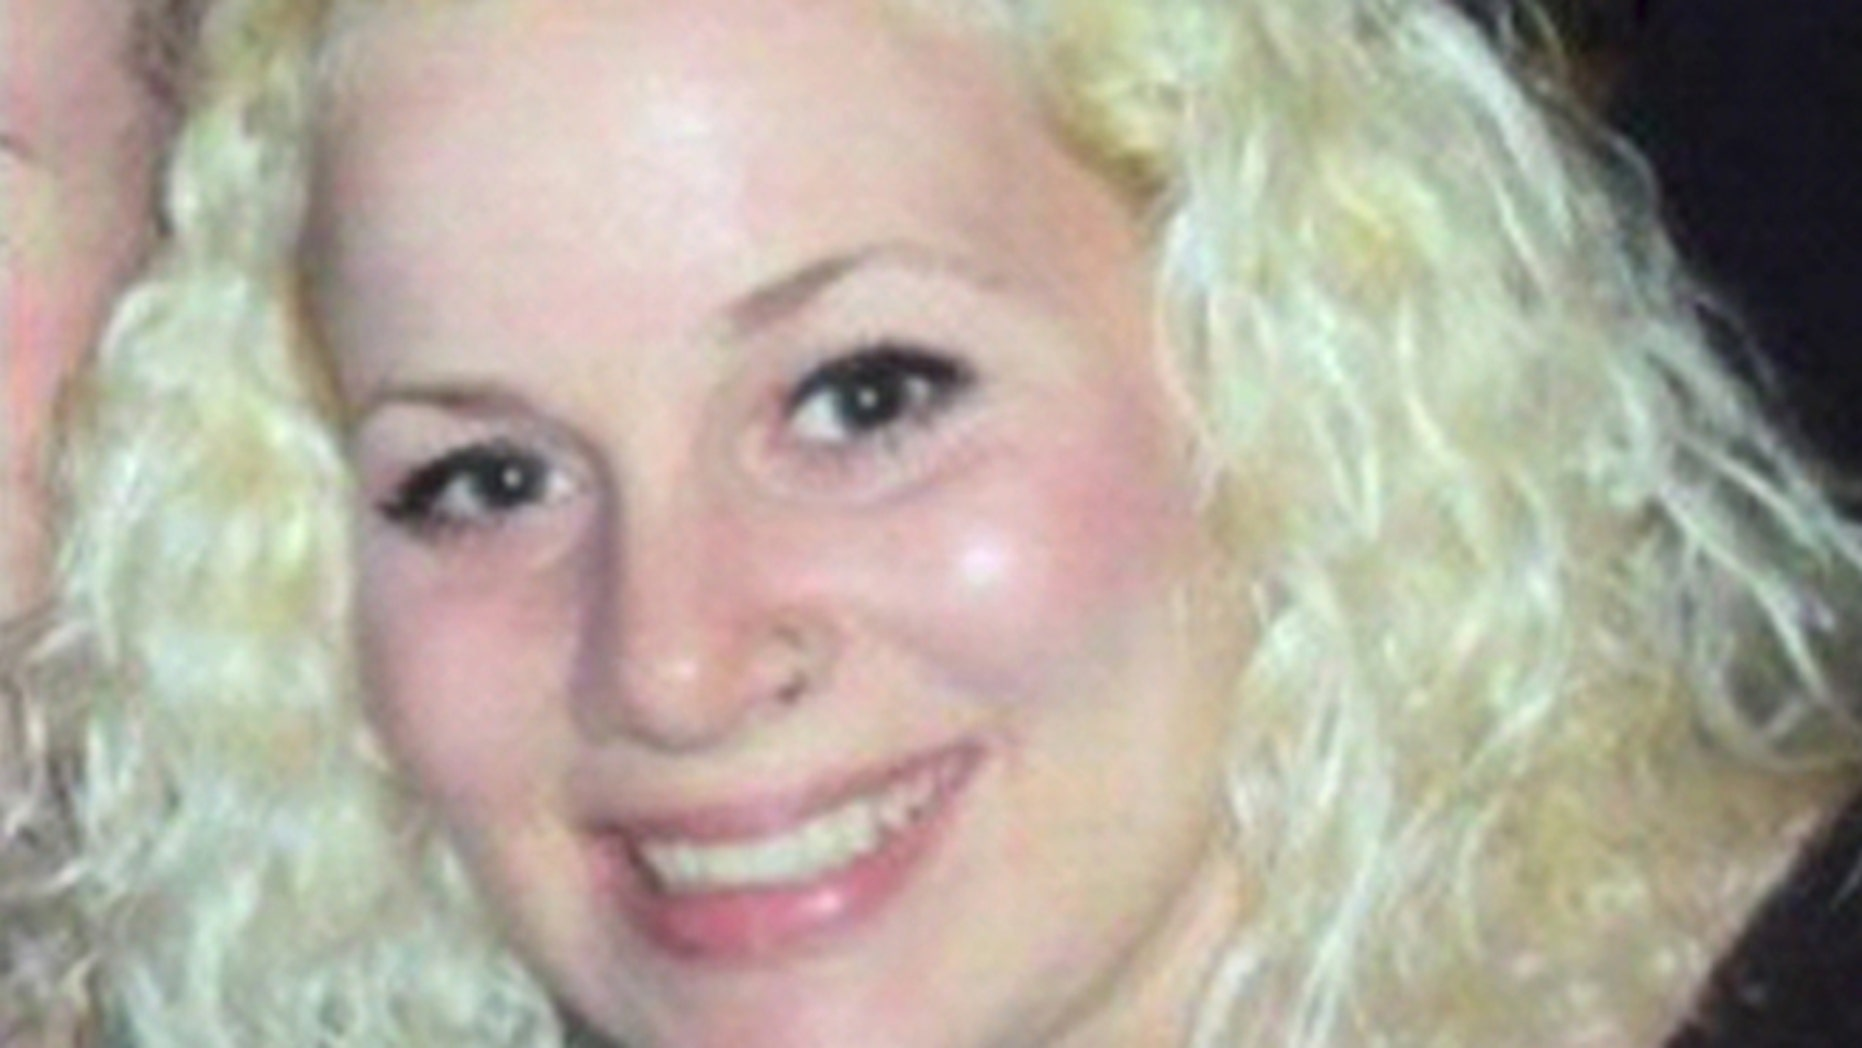 This undated photo provided by the Lafayette Police Department shows missing college student Michaela Shunick.